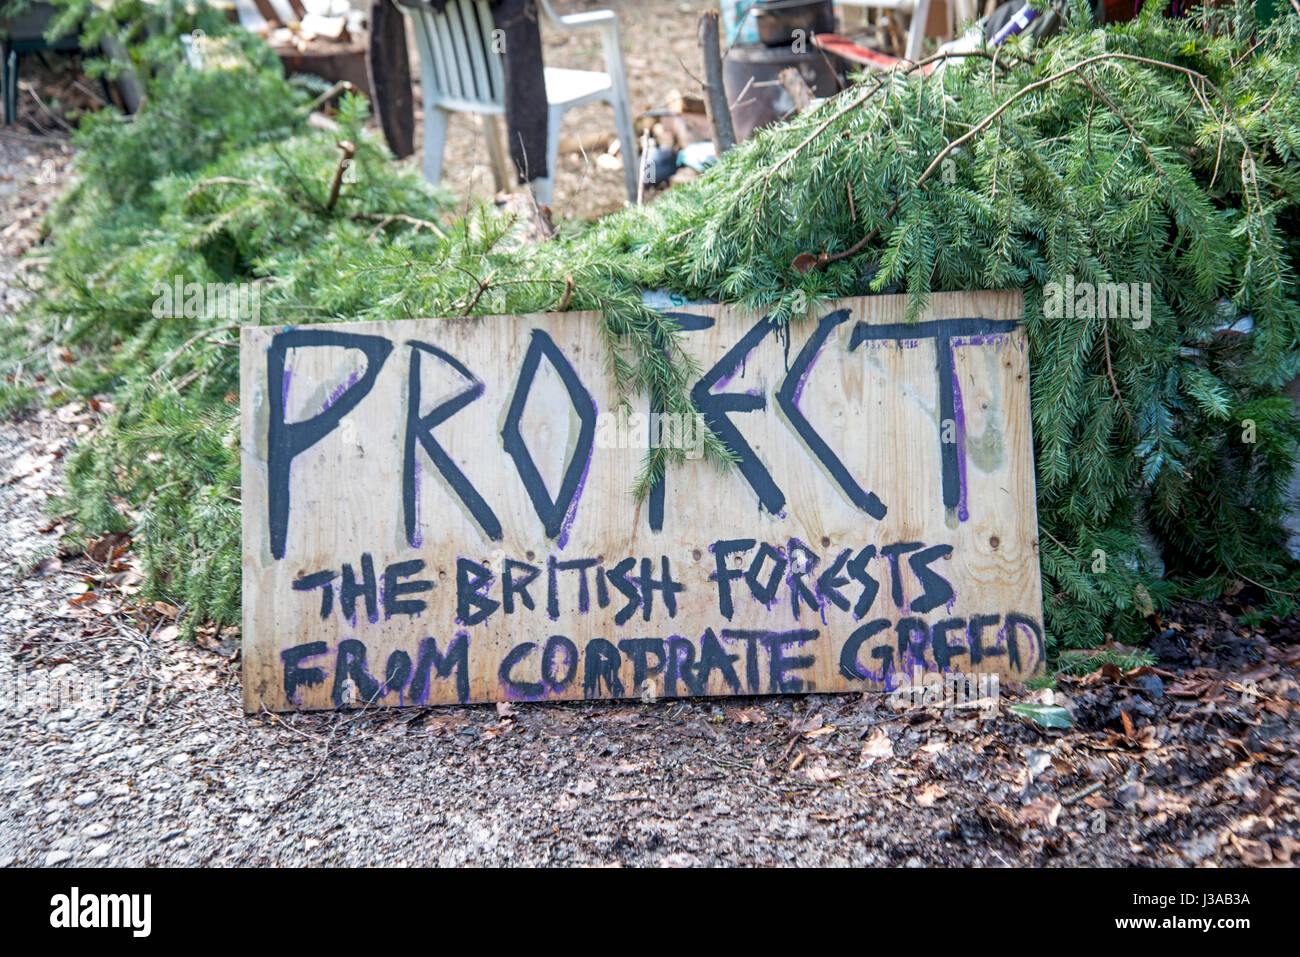 Oil Drilling and Fracking Protest Camp, Leith Hill, Surrey, UK. March, 2017 - Stock Image